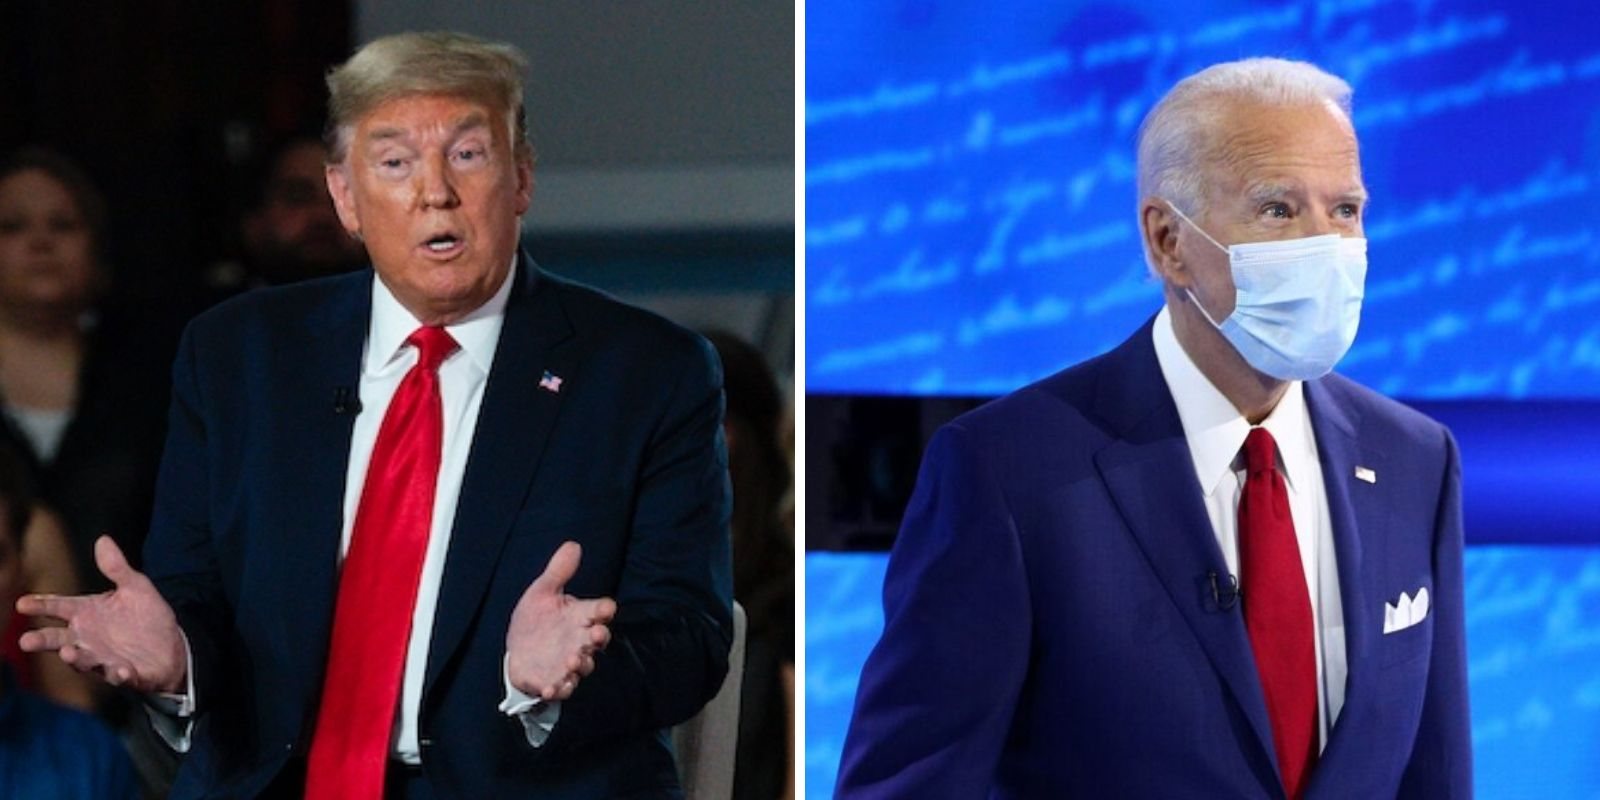 Presidential Debate Commission changes 'foreign policy' focus of final debate after Biden corruption bombshell